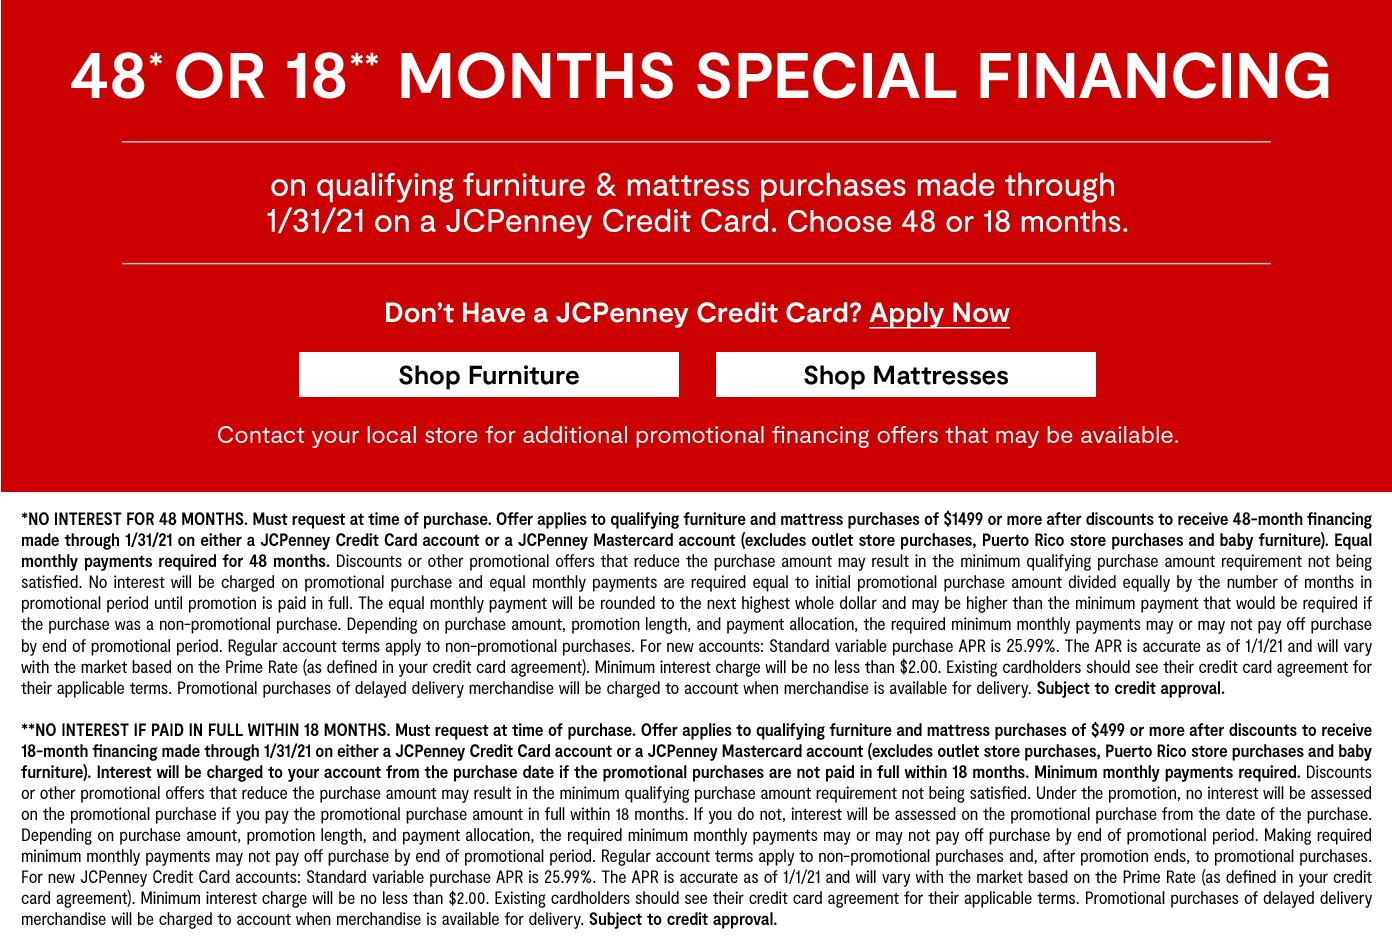 48 or 18 months special financing on qualifying furniture & mattress purchases by 1/31/21 on a JCP credit card get details